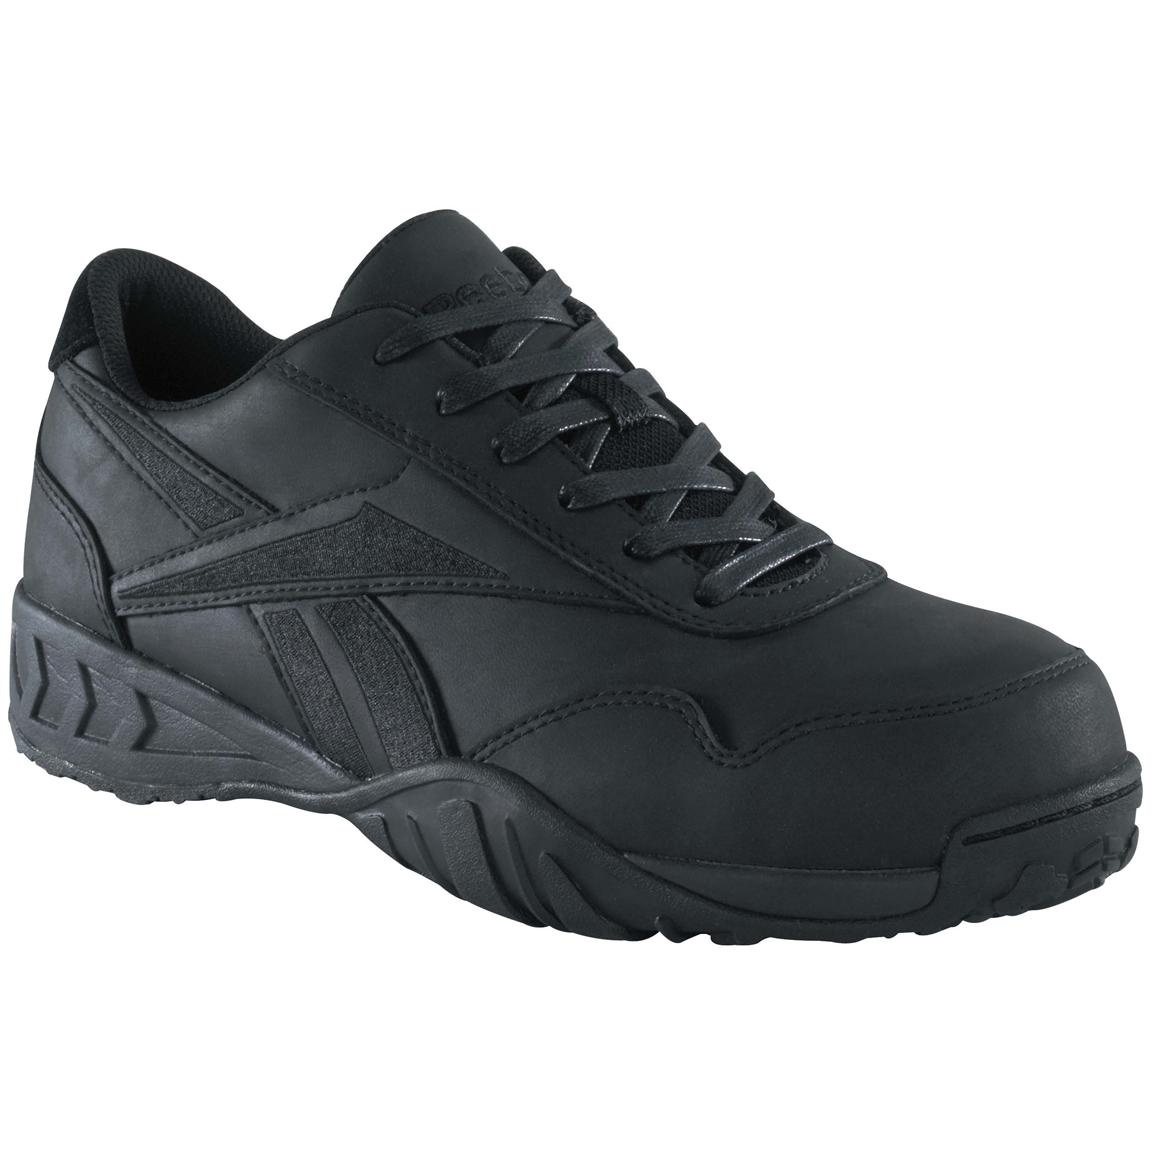 Women's Reebok® Low Profile Composite Toe Oxford Shoes, Black